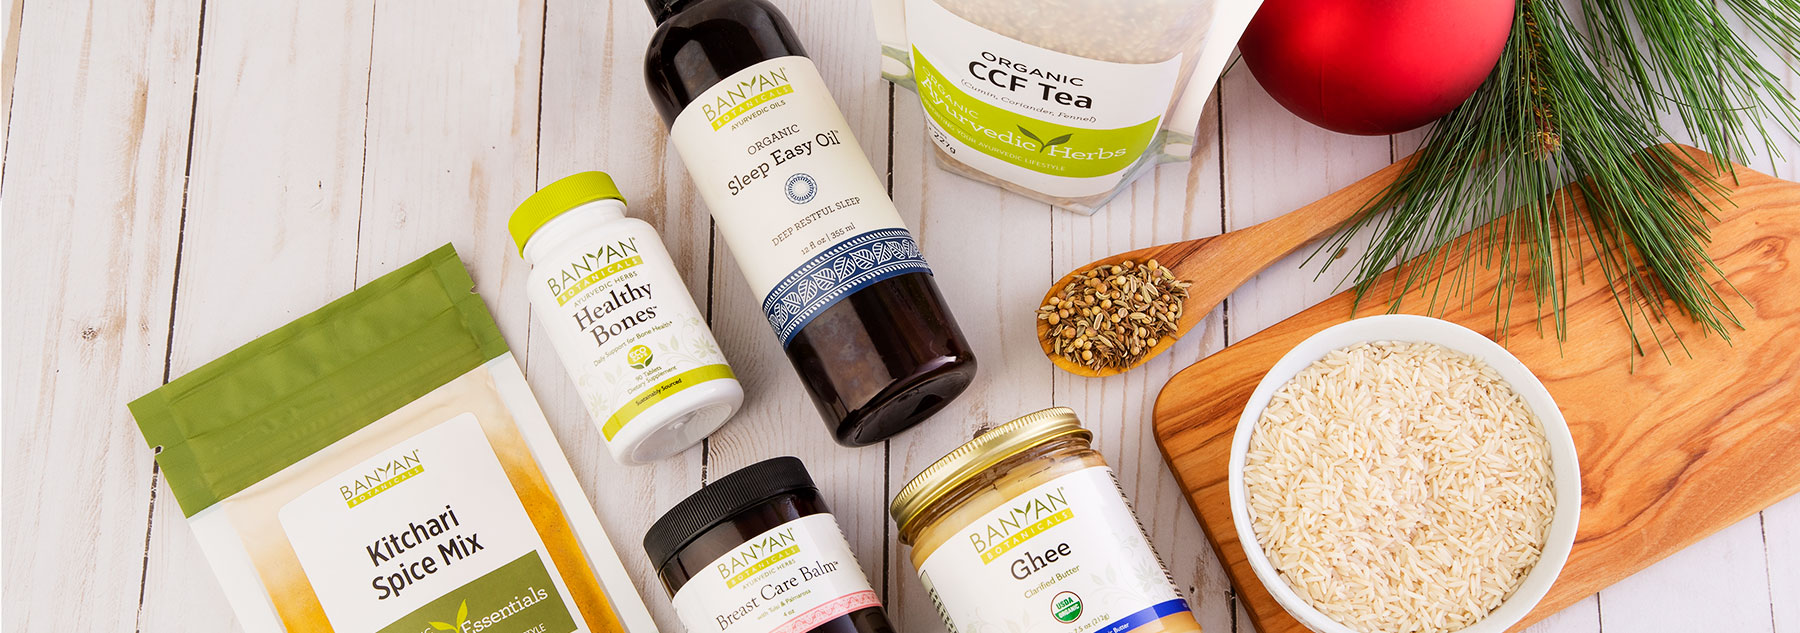 5 Self-Care Gifts for Yourself   Banyan